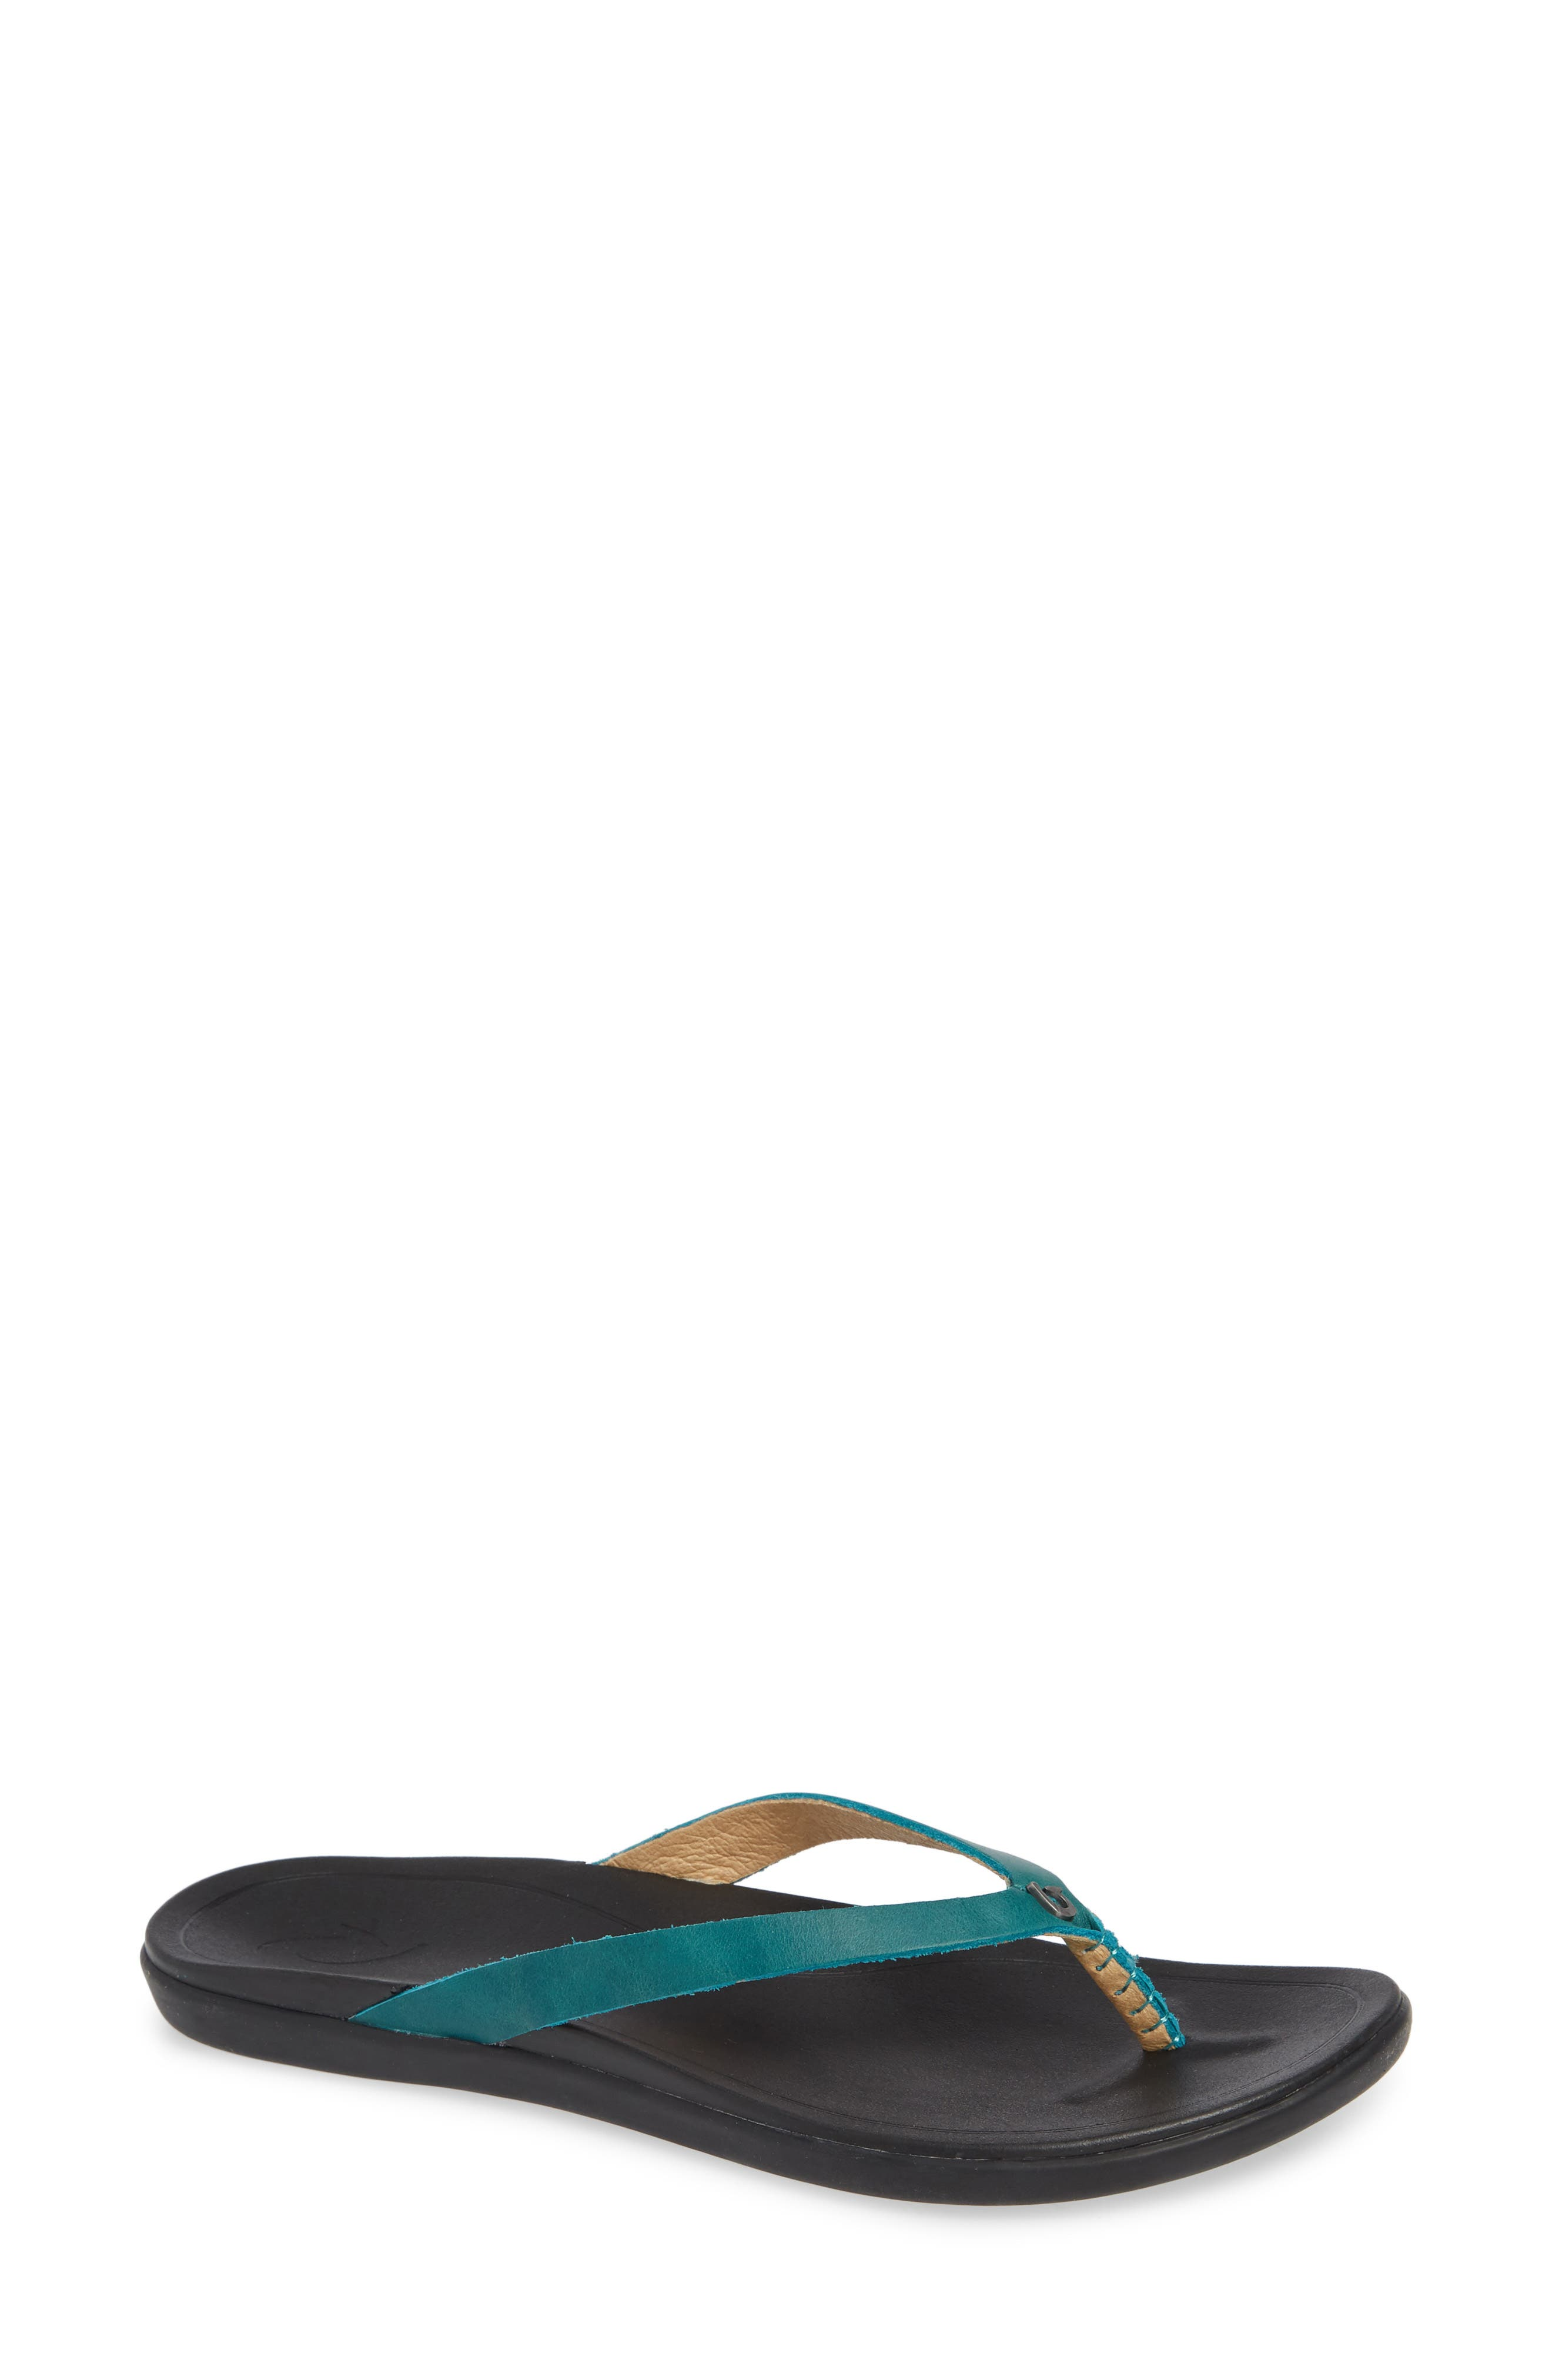 A full-grain leather flip-flop is crafted with a slender silhouette, while the anatomical insole provides all-day comfort and support. Style Name: Olukai \\\'Ho Opio\\\' Leather Flip Flop (Women). Style Number: 5085181. Available in stores.